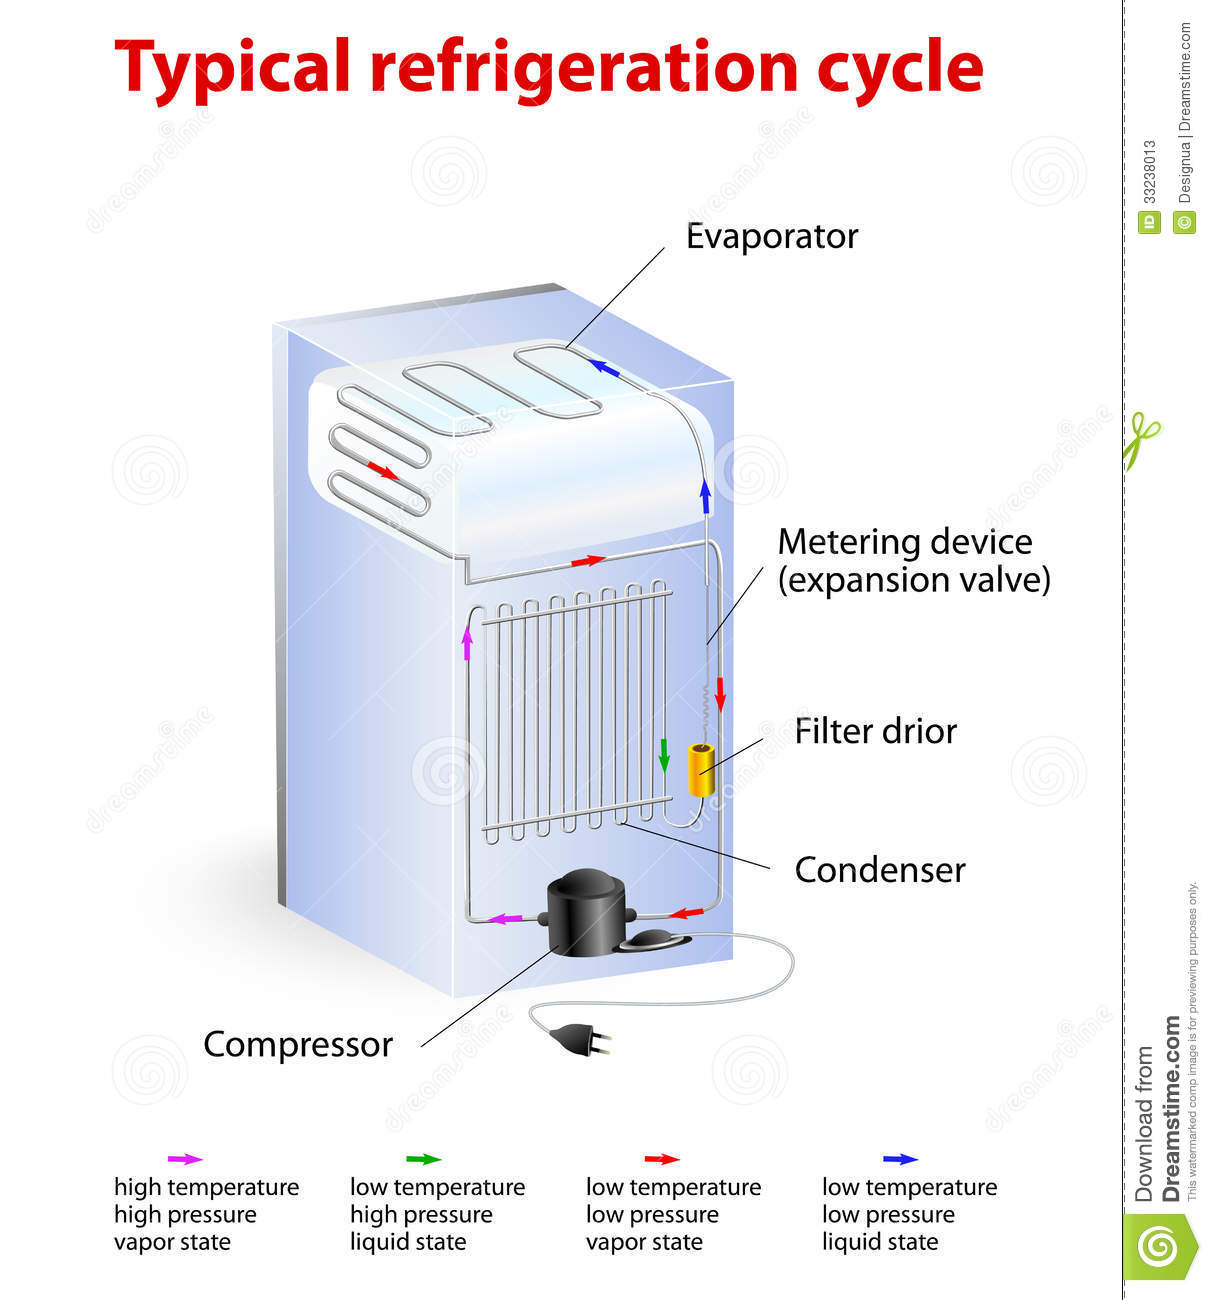 hight resolution of typical refrigeration cycle vector diagram how it works the compressor constricts the refrigerant vapor raising its pressure